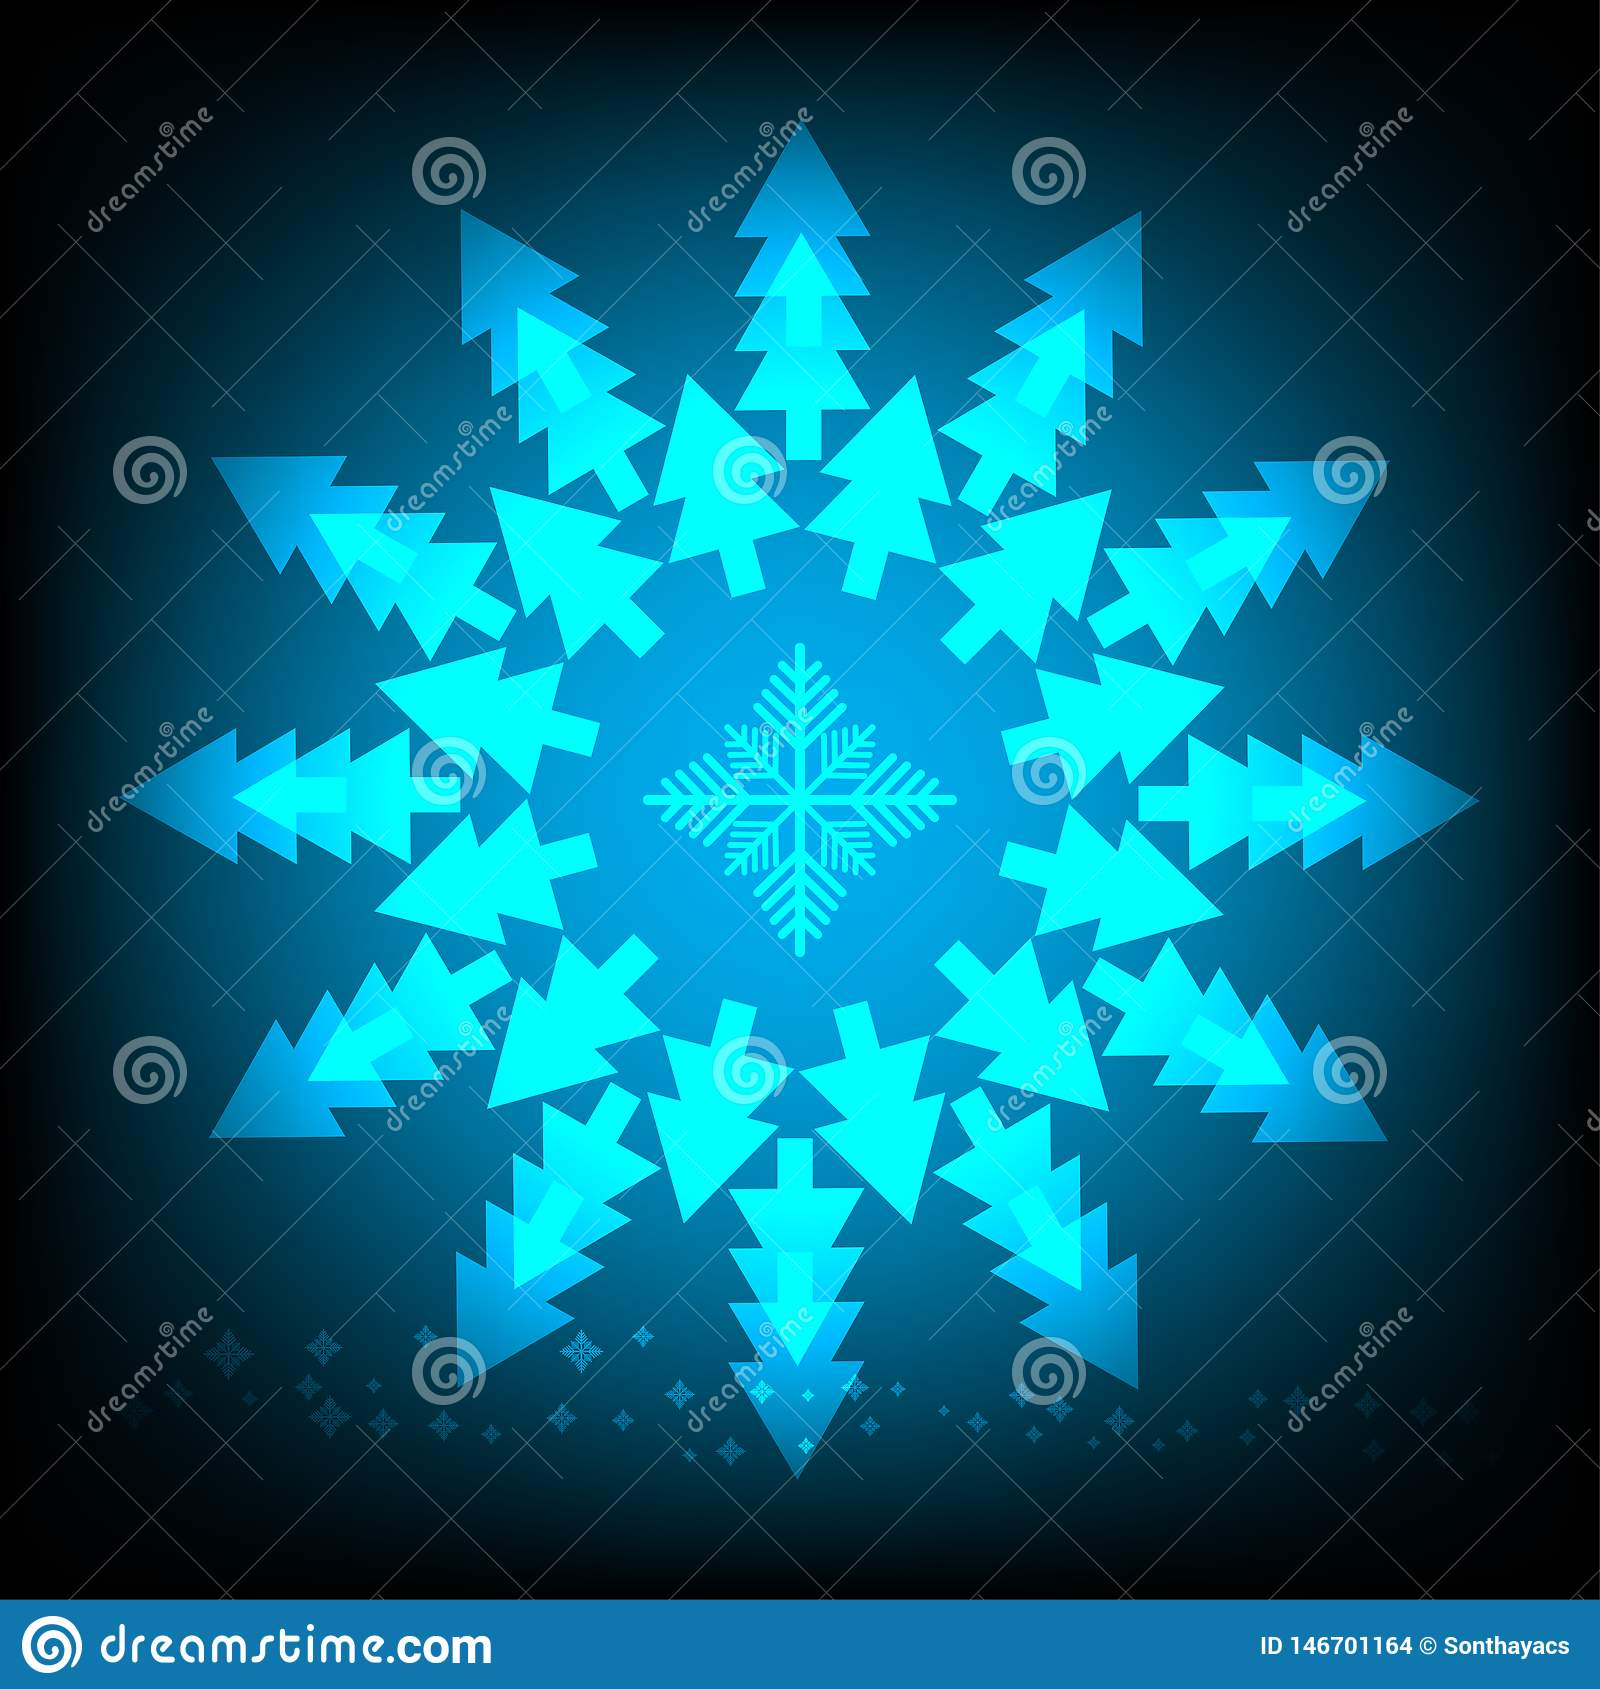 abstract background of Christmas tree